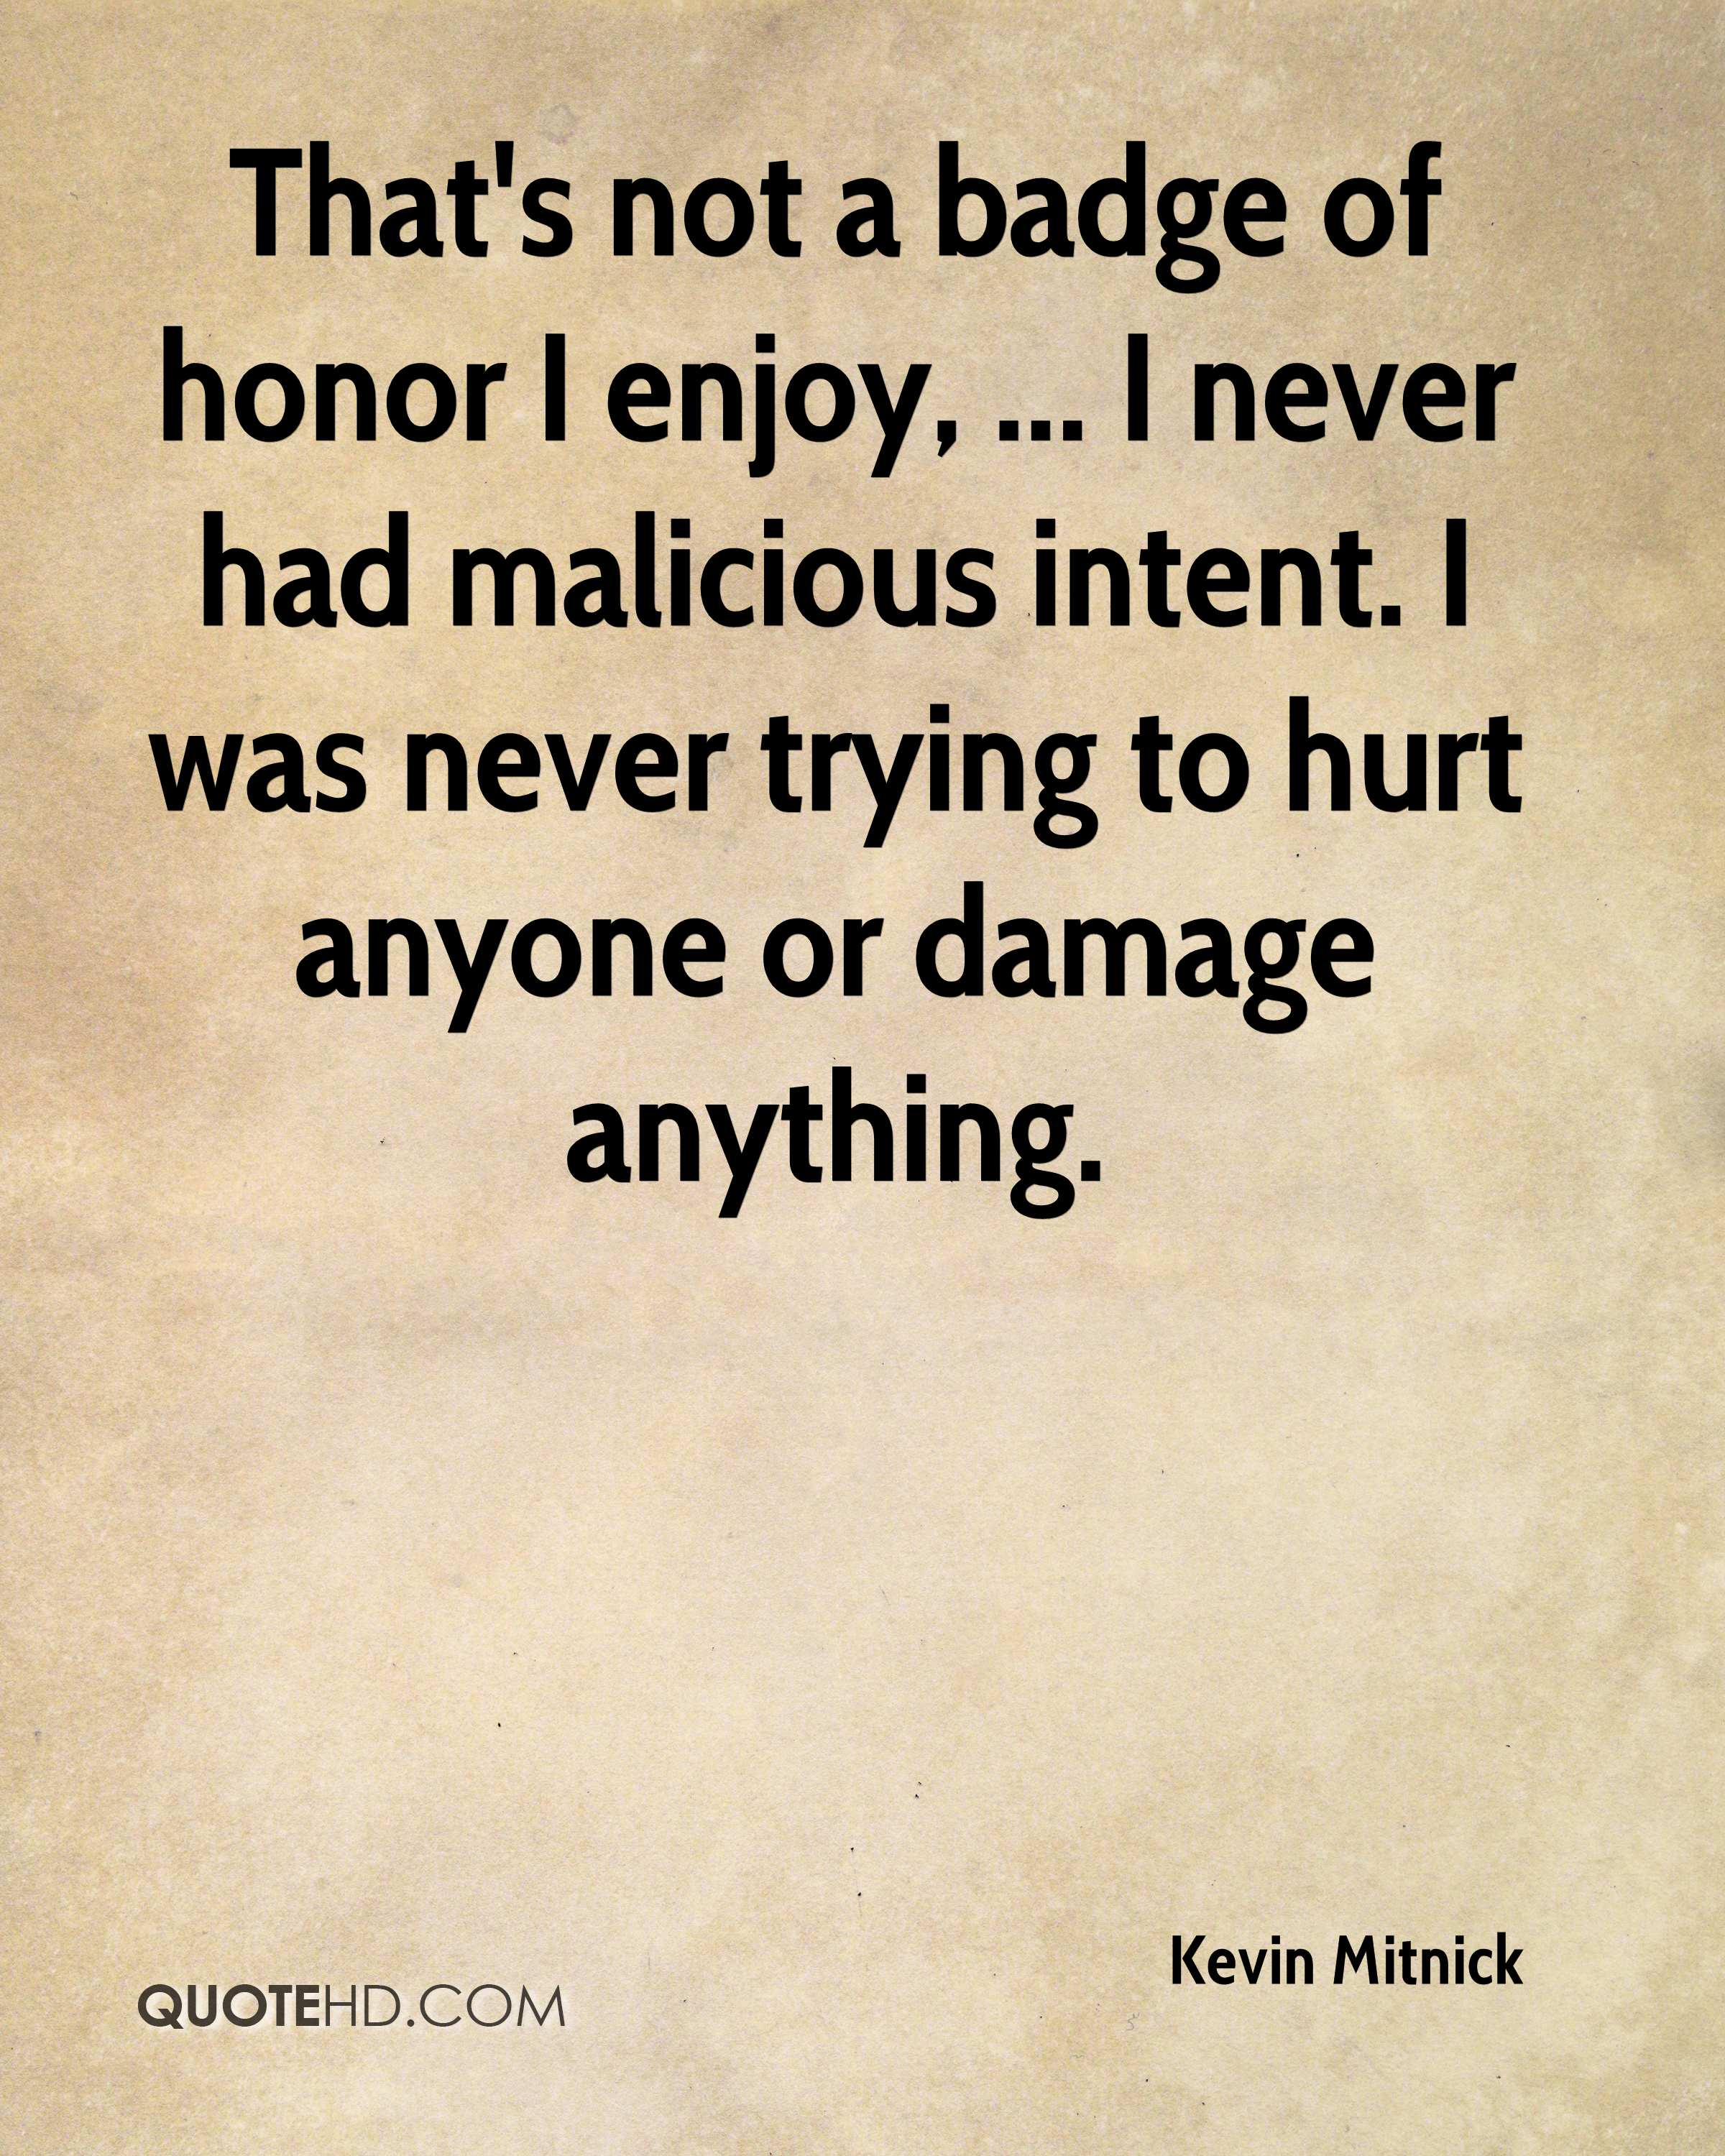 That's not a badge of honor I enjoy, ... I never had malicious intent. I was never trying to hurt anyone or damage anything.